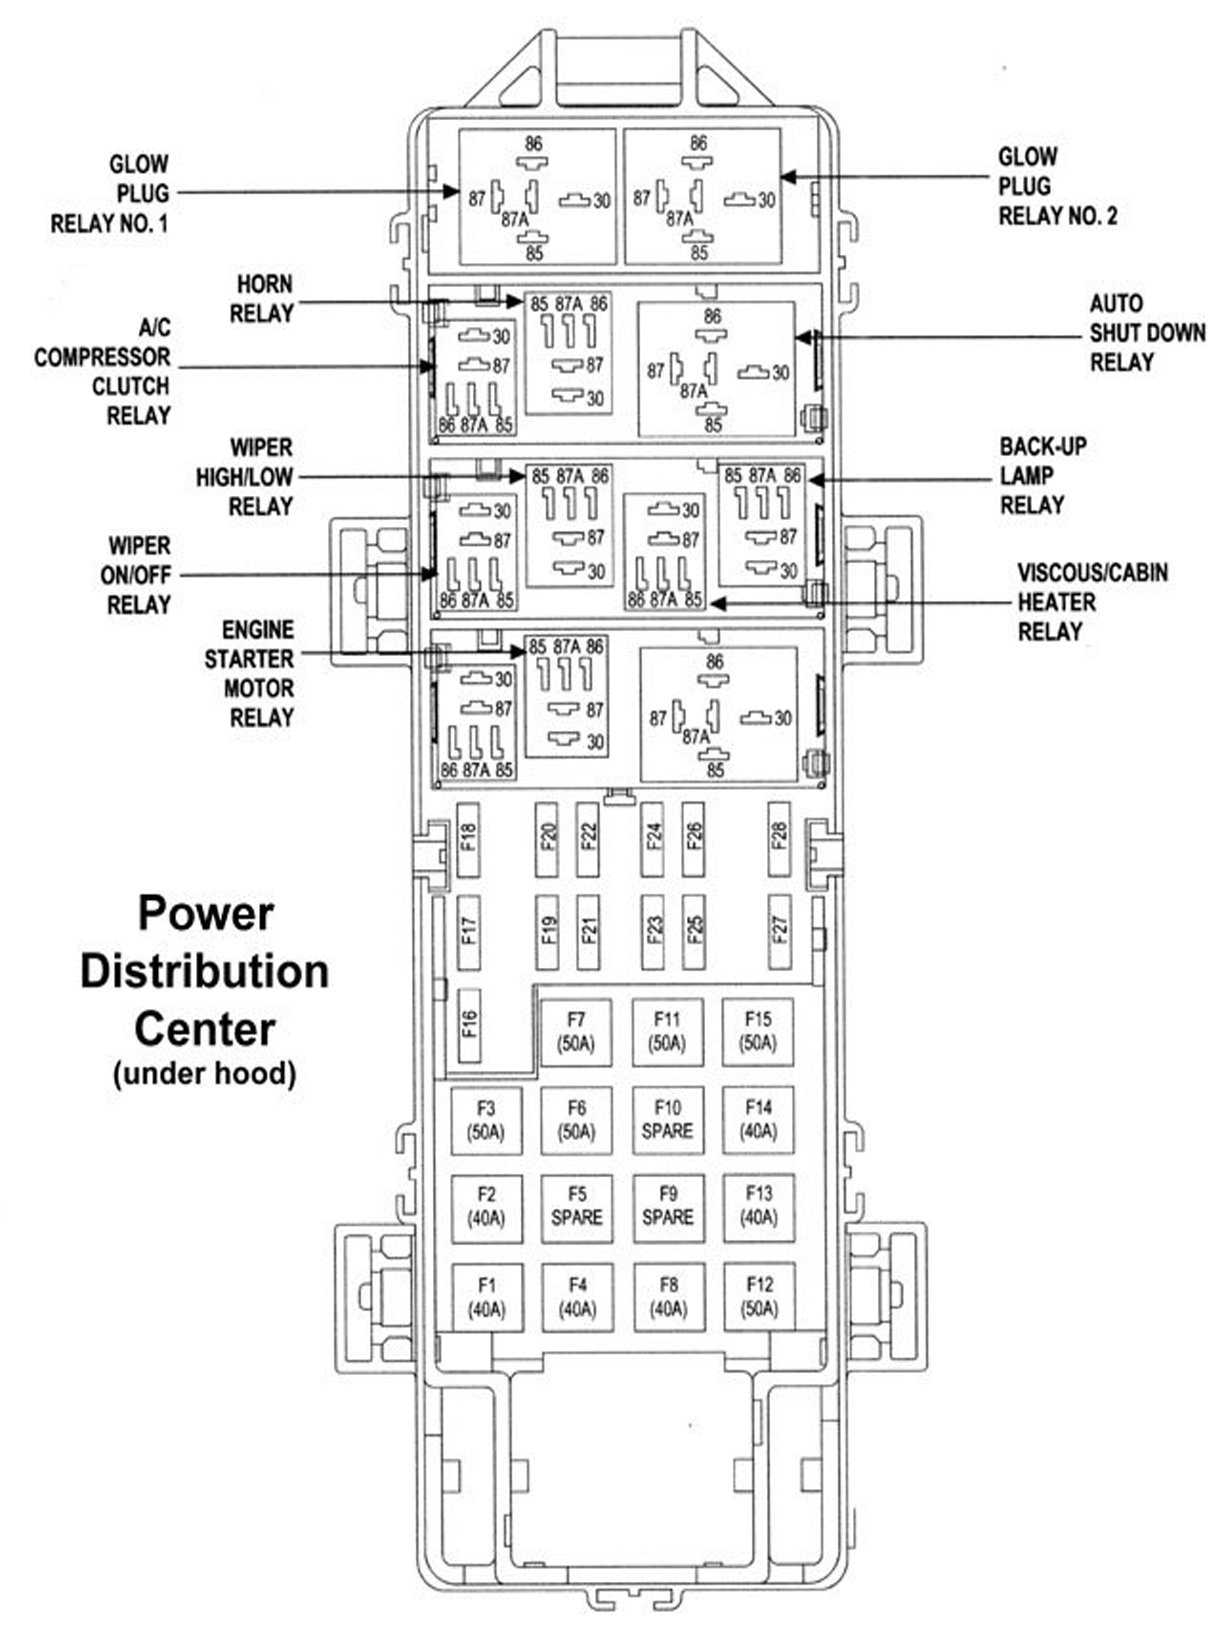 jeep grand cherokee wj 1999 to 2004 fuse box diagram. Black Bedroom Furniture Sets. Home Design Ideas